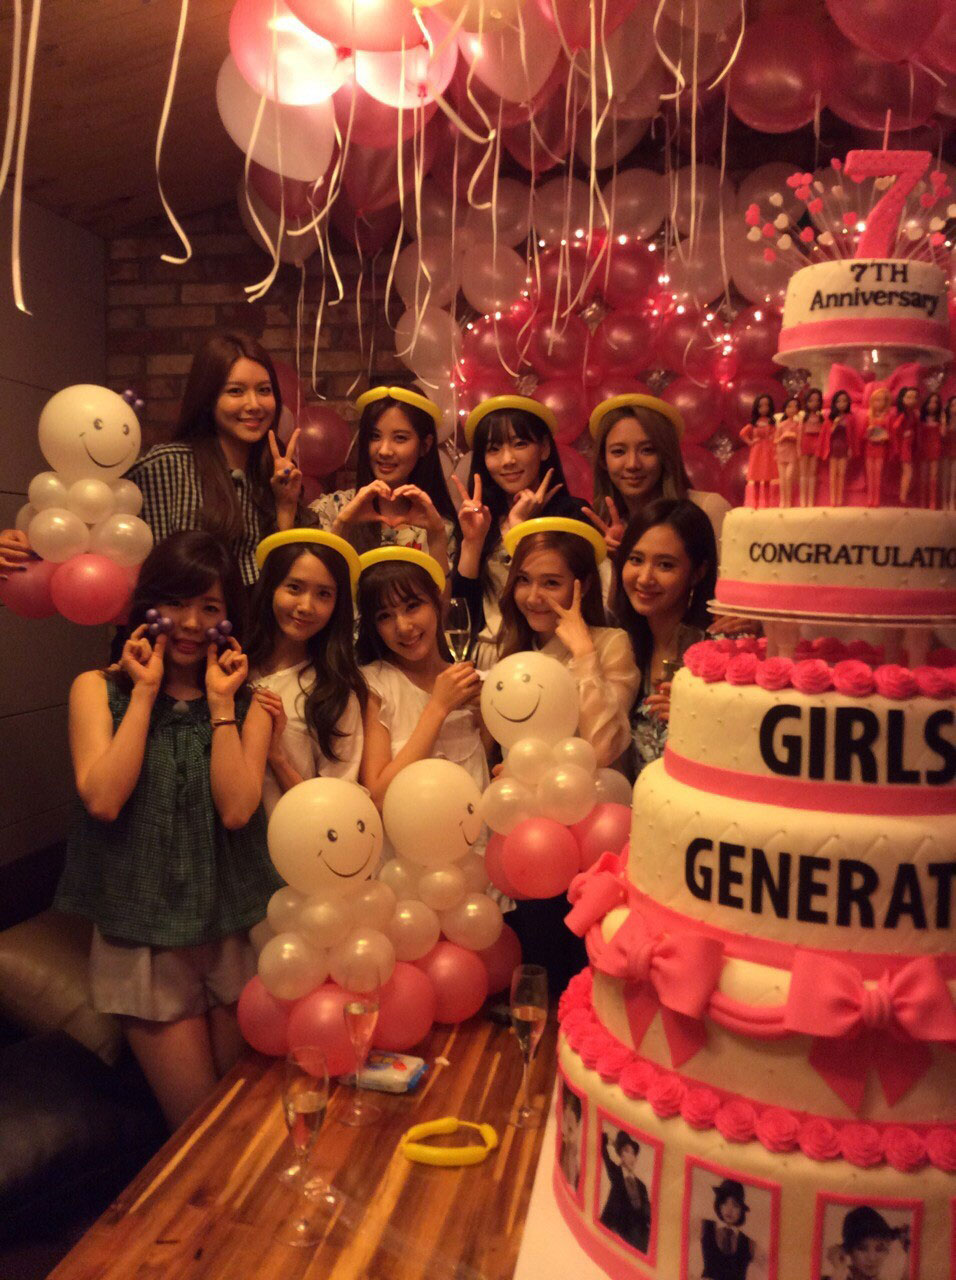 Girls Generation 7th anniversary party